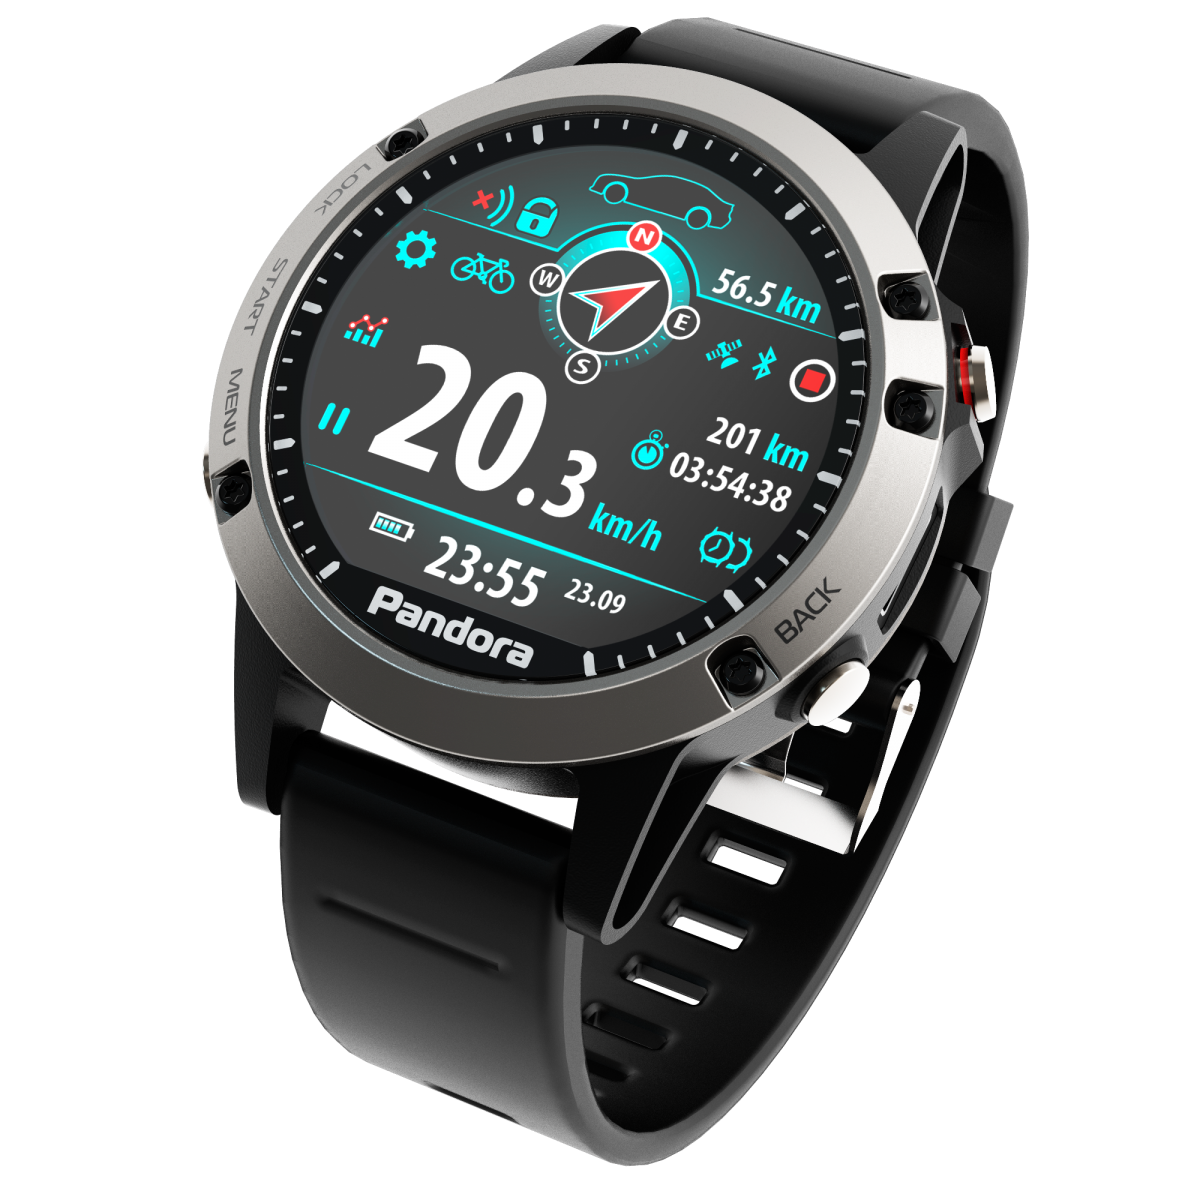 smart-watch-with-bluetooth-technology_40245_3_1597908169